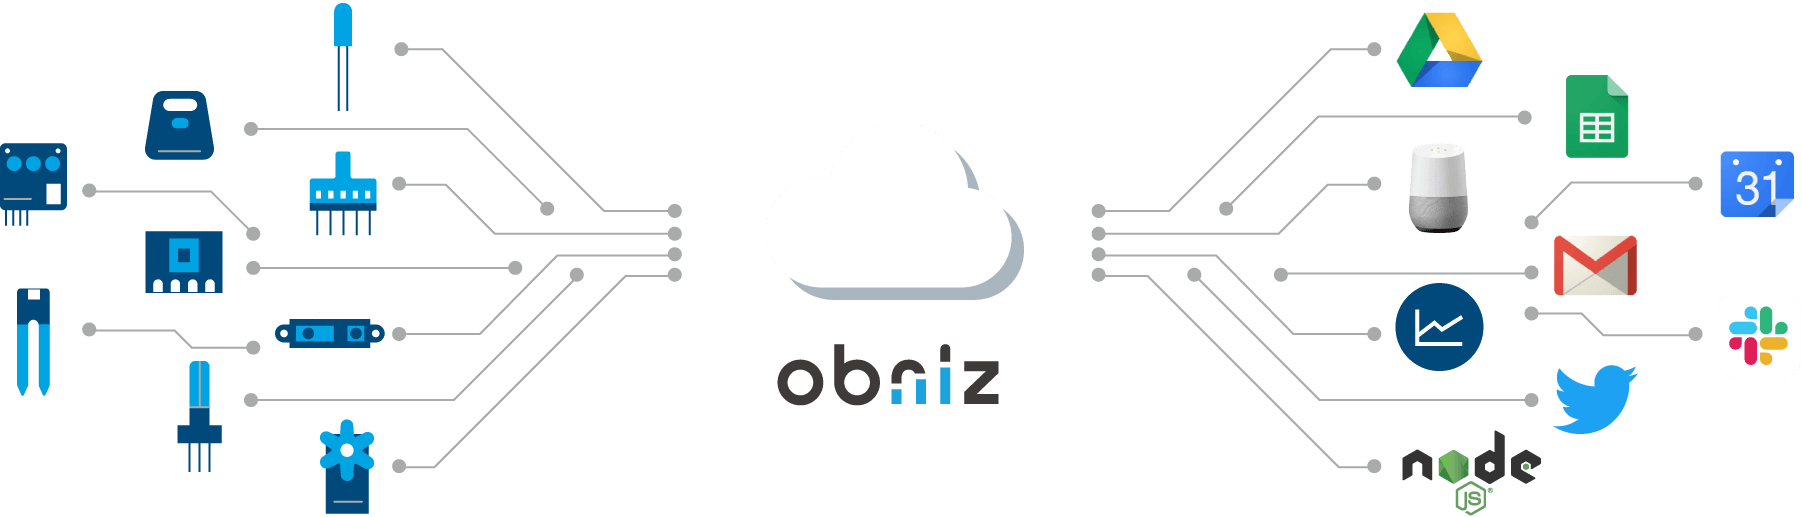 obniz Integrate Hardwares And Web Services Easily